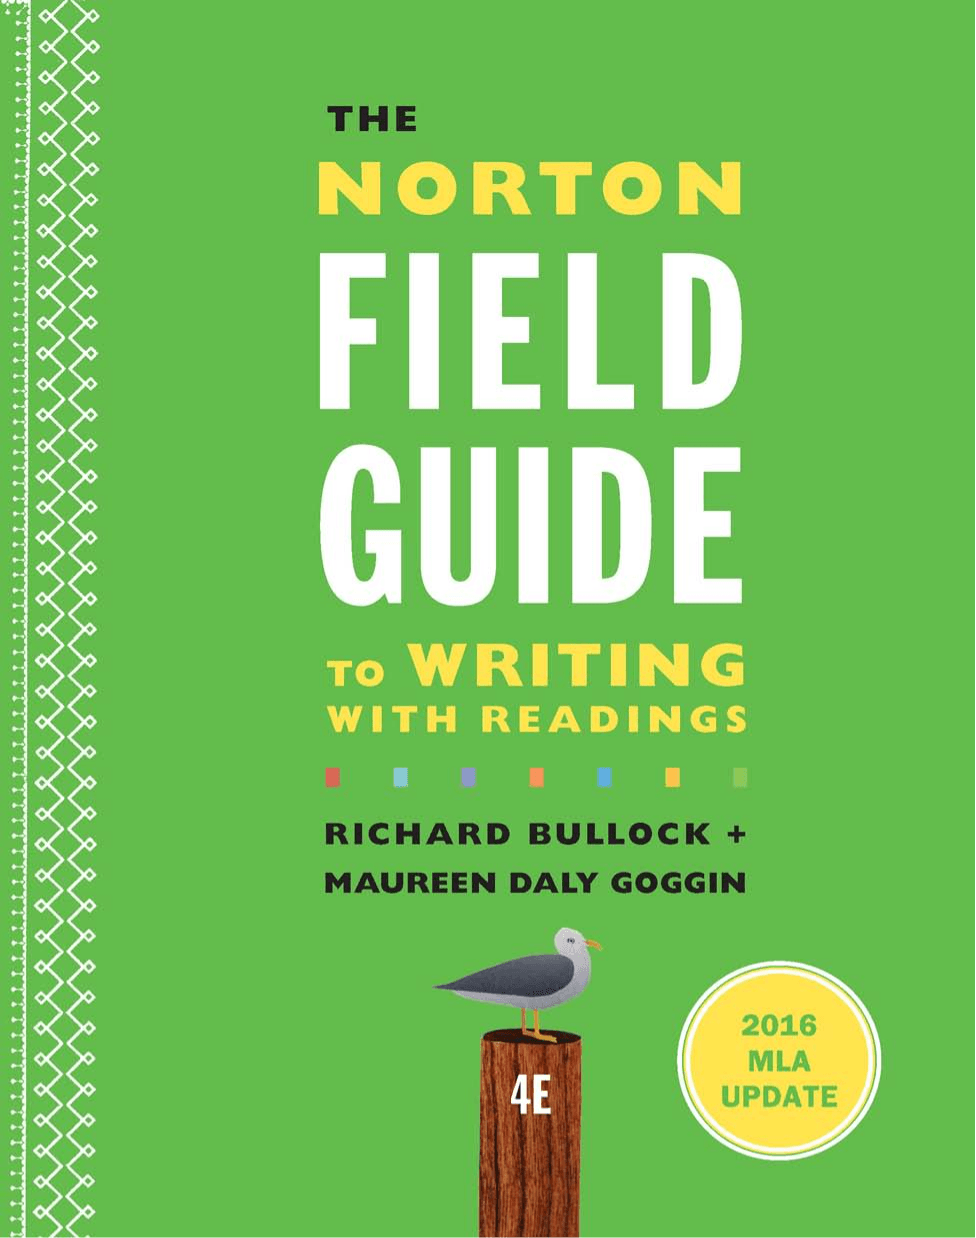 The Norton Field Guide to Writing with Readings (Fourth Edition)